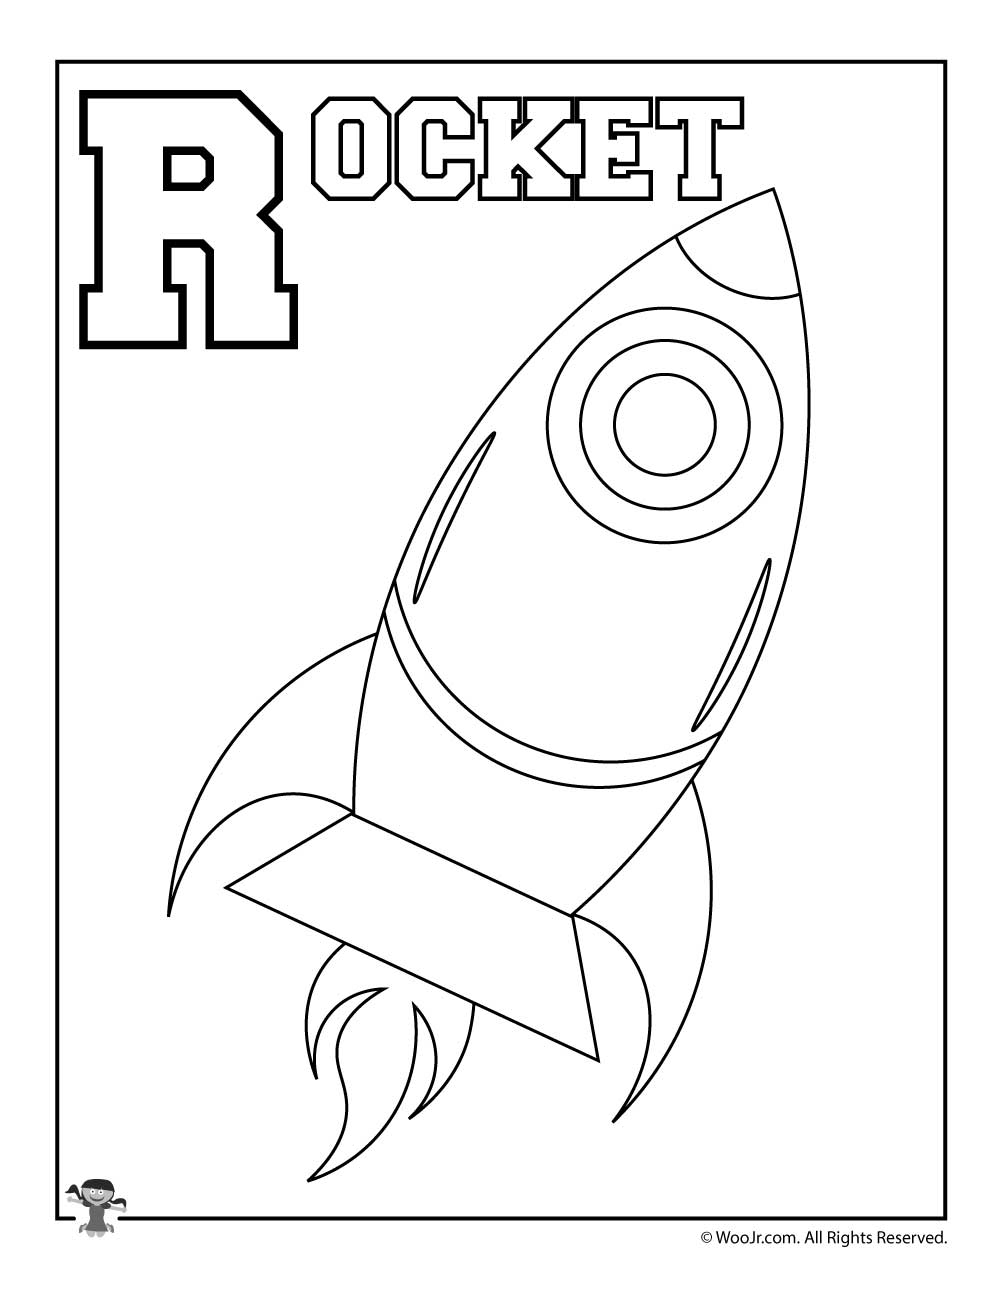 whole alphabet coloring pages - photo#20